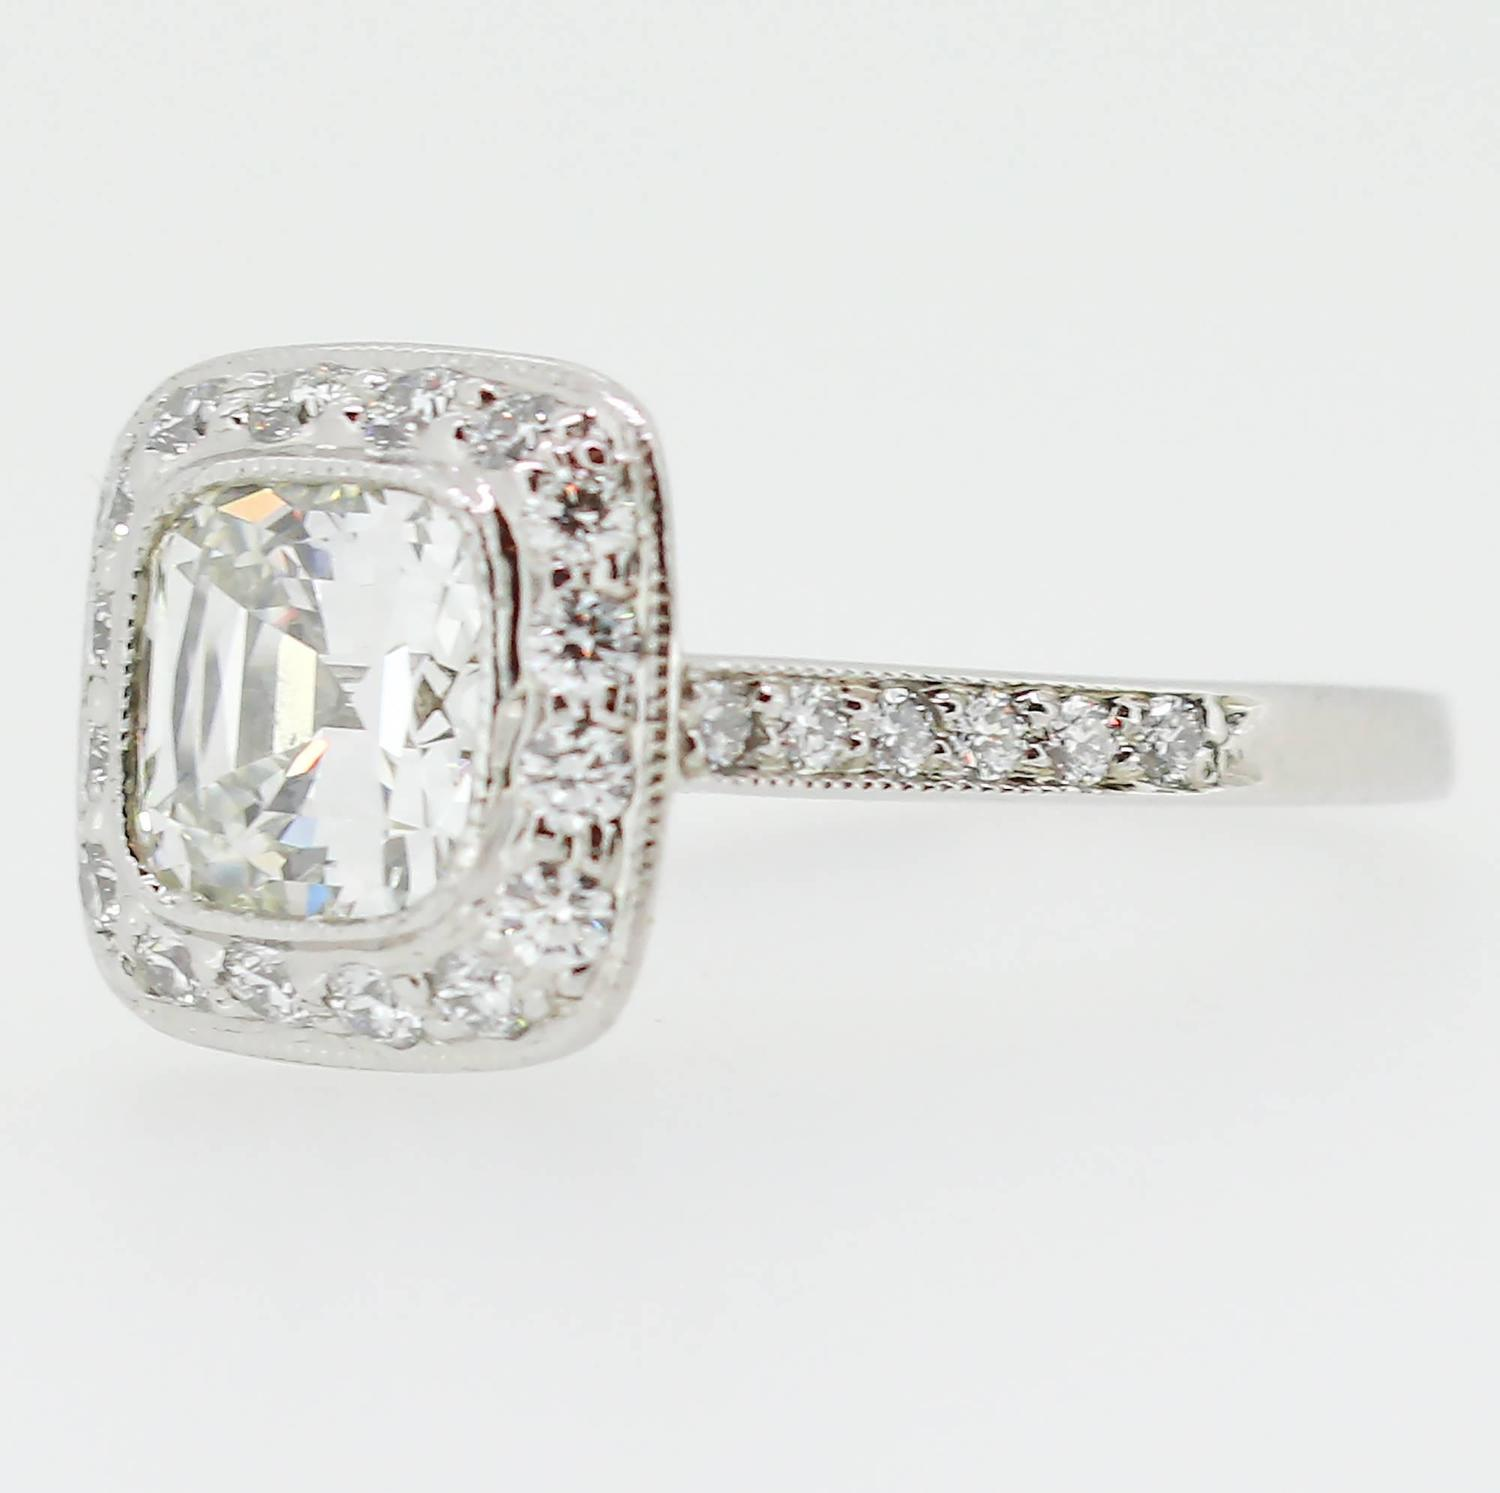 Tiffany And Co 1 62 Carat Legacy Cushion Cut Platinum